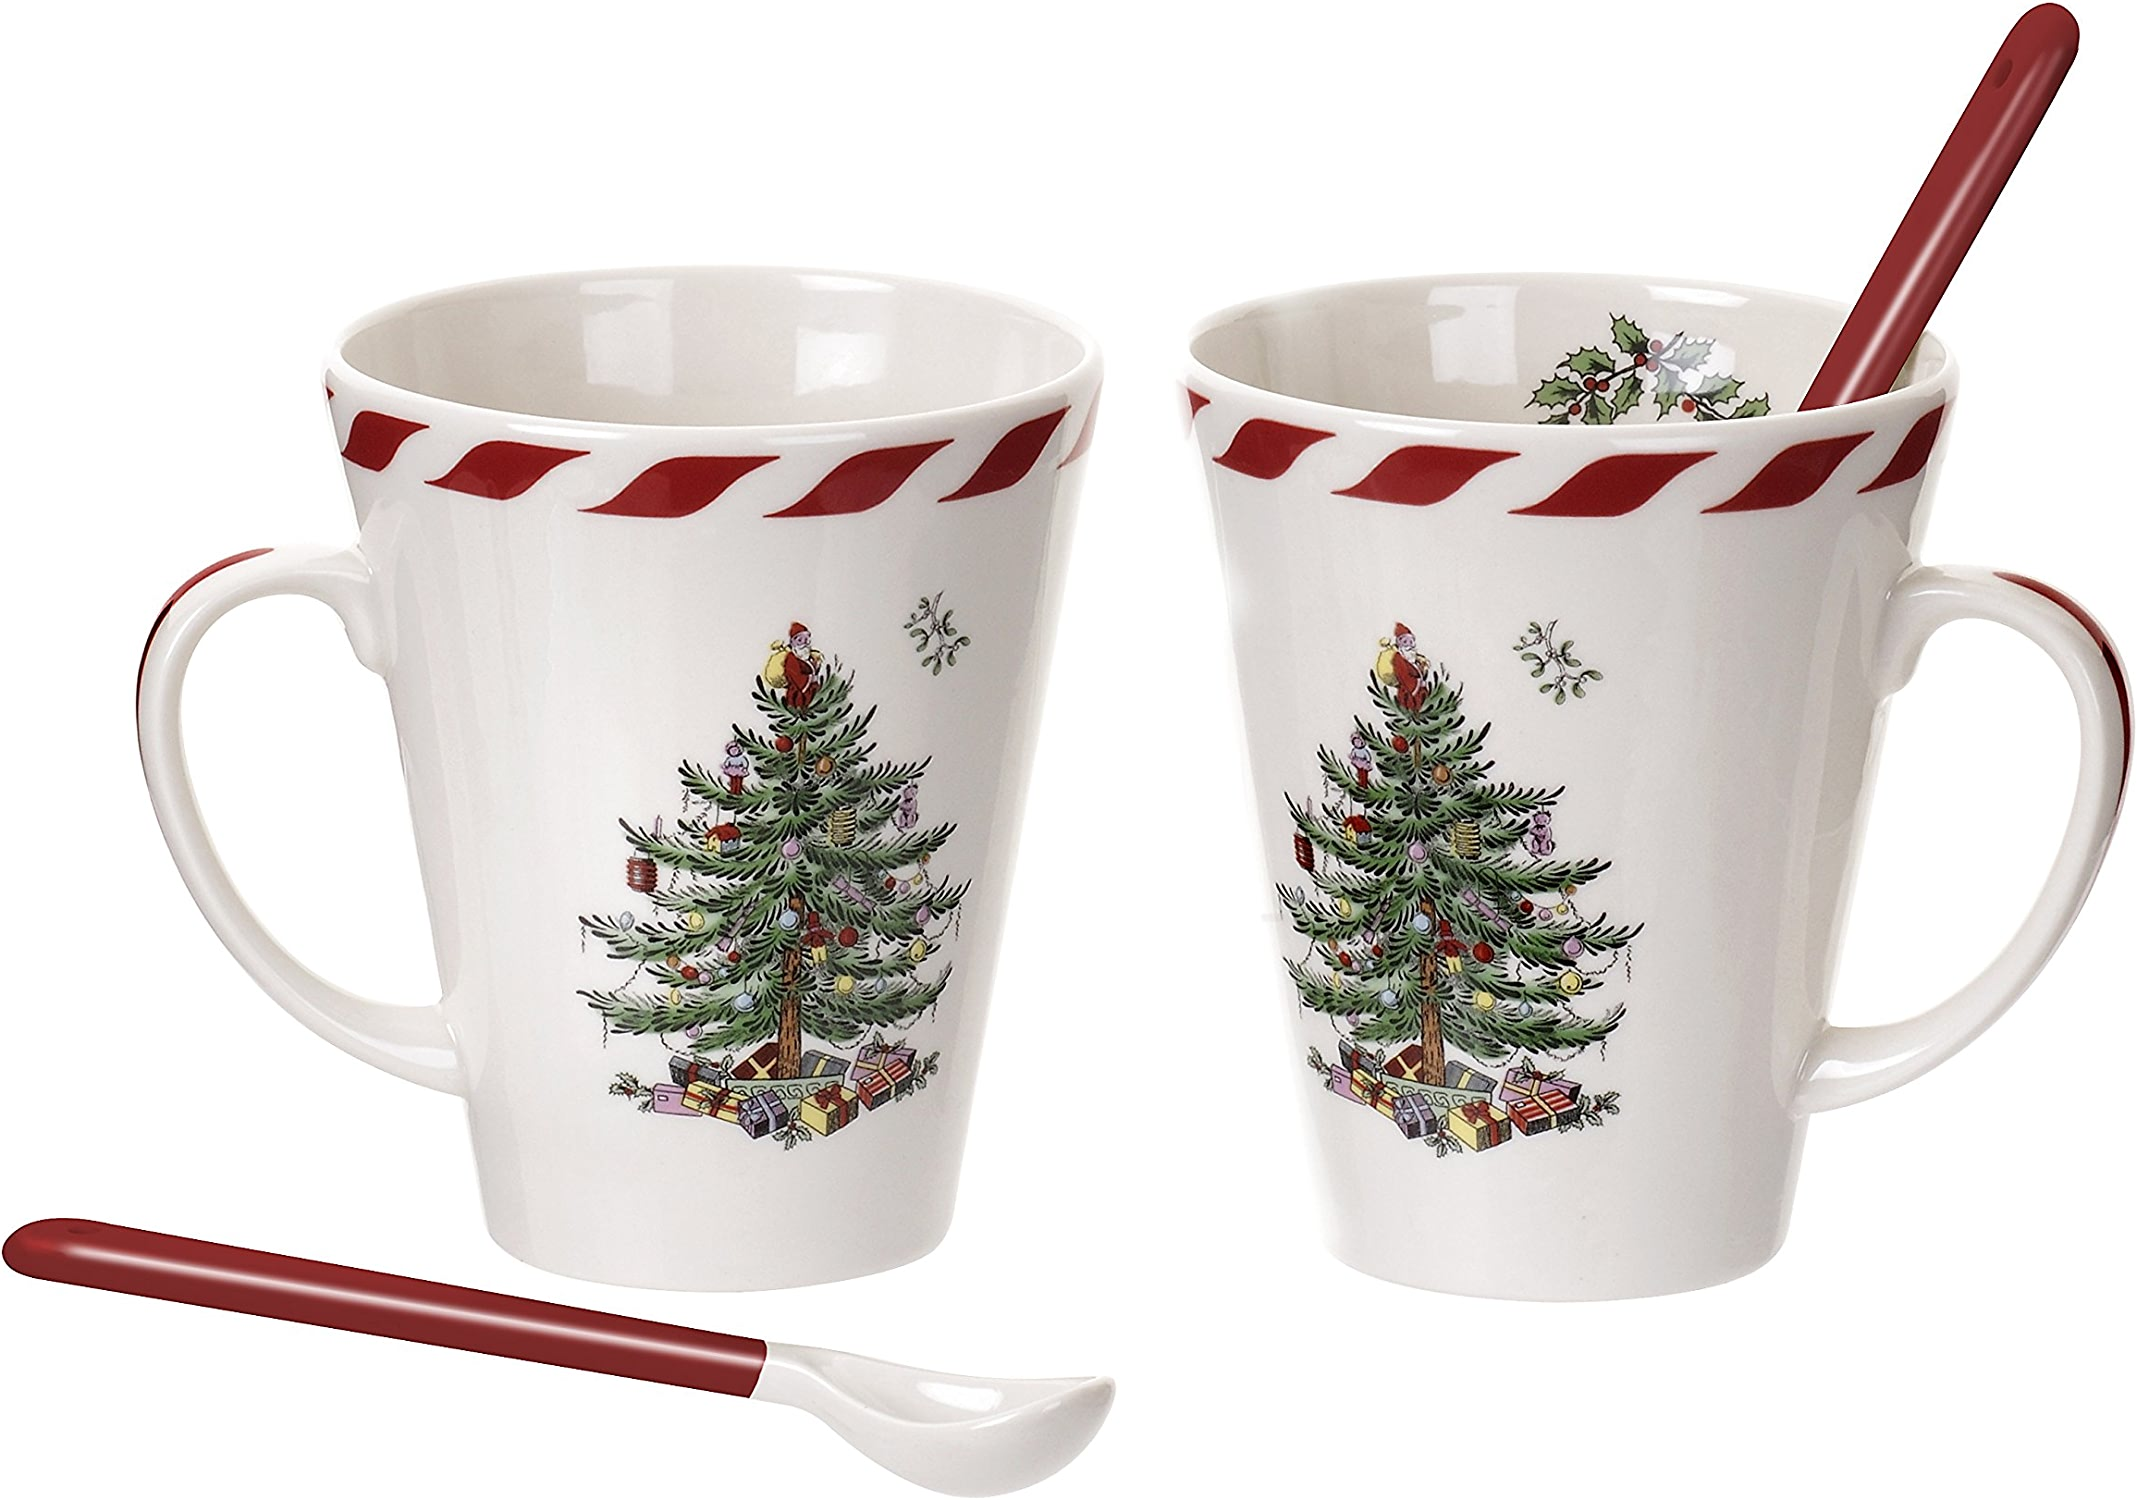 Spode Christmas Tree Peppermint Mugs with Spoons, Set of 2 by Spode